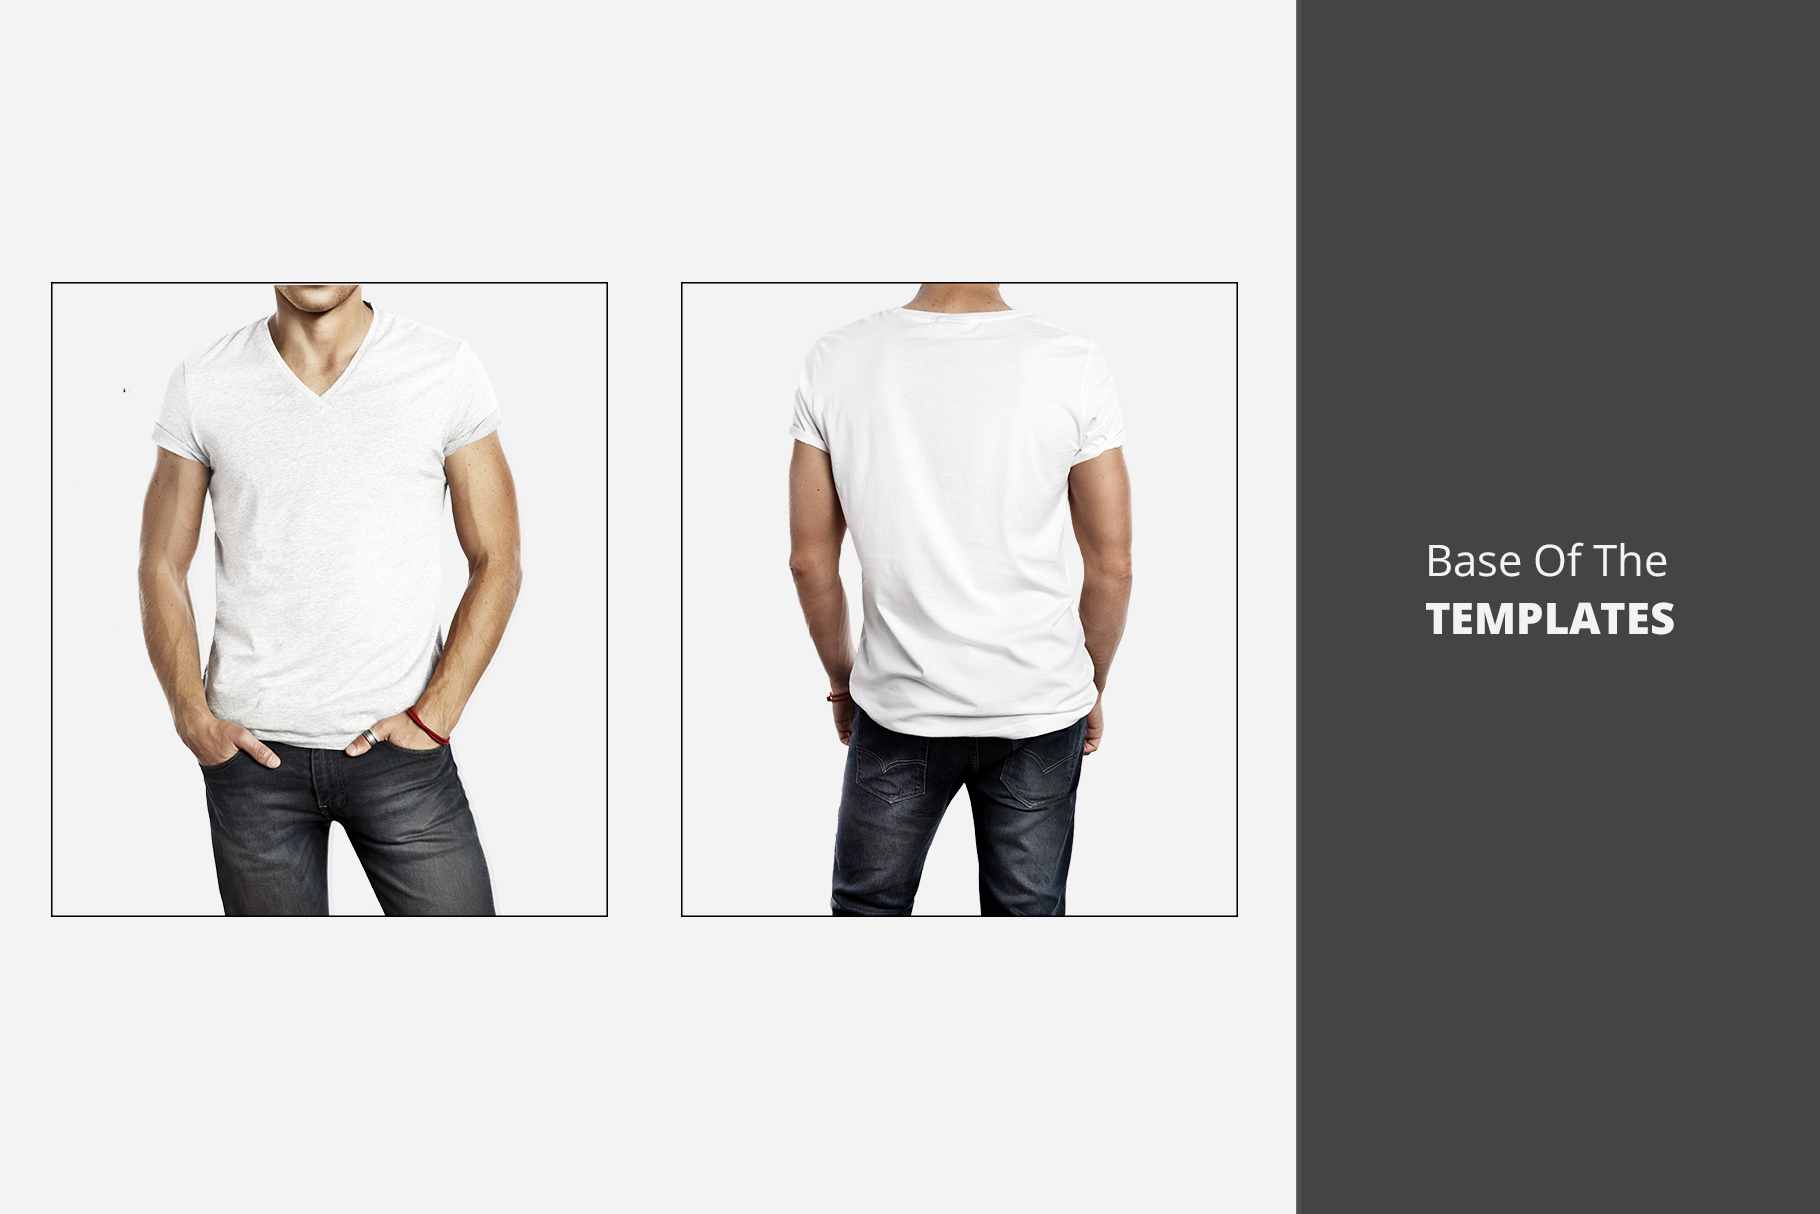 muscular men high resolution t-shirt mockup raw image used to create the mockup psd file